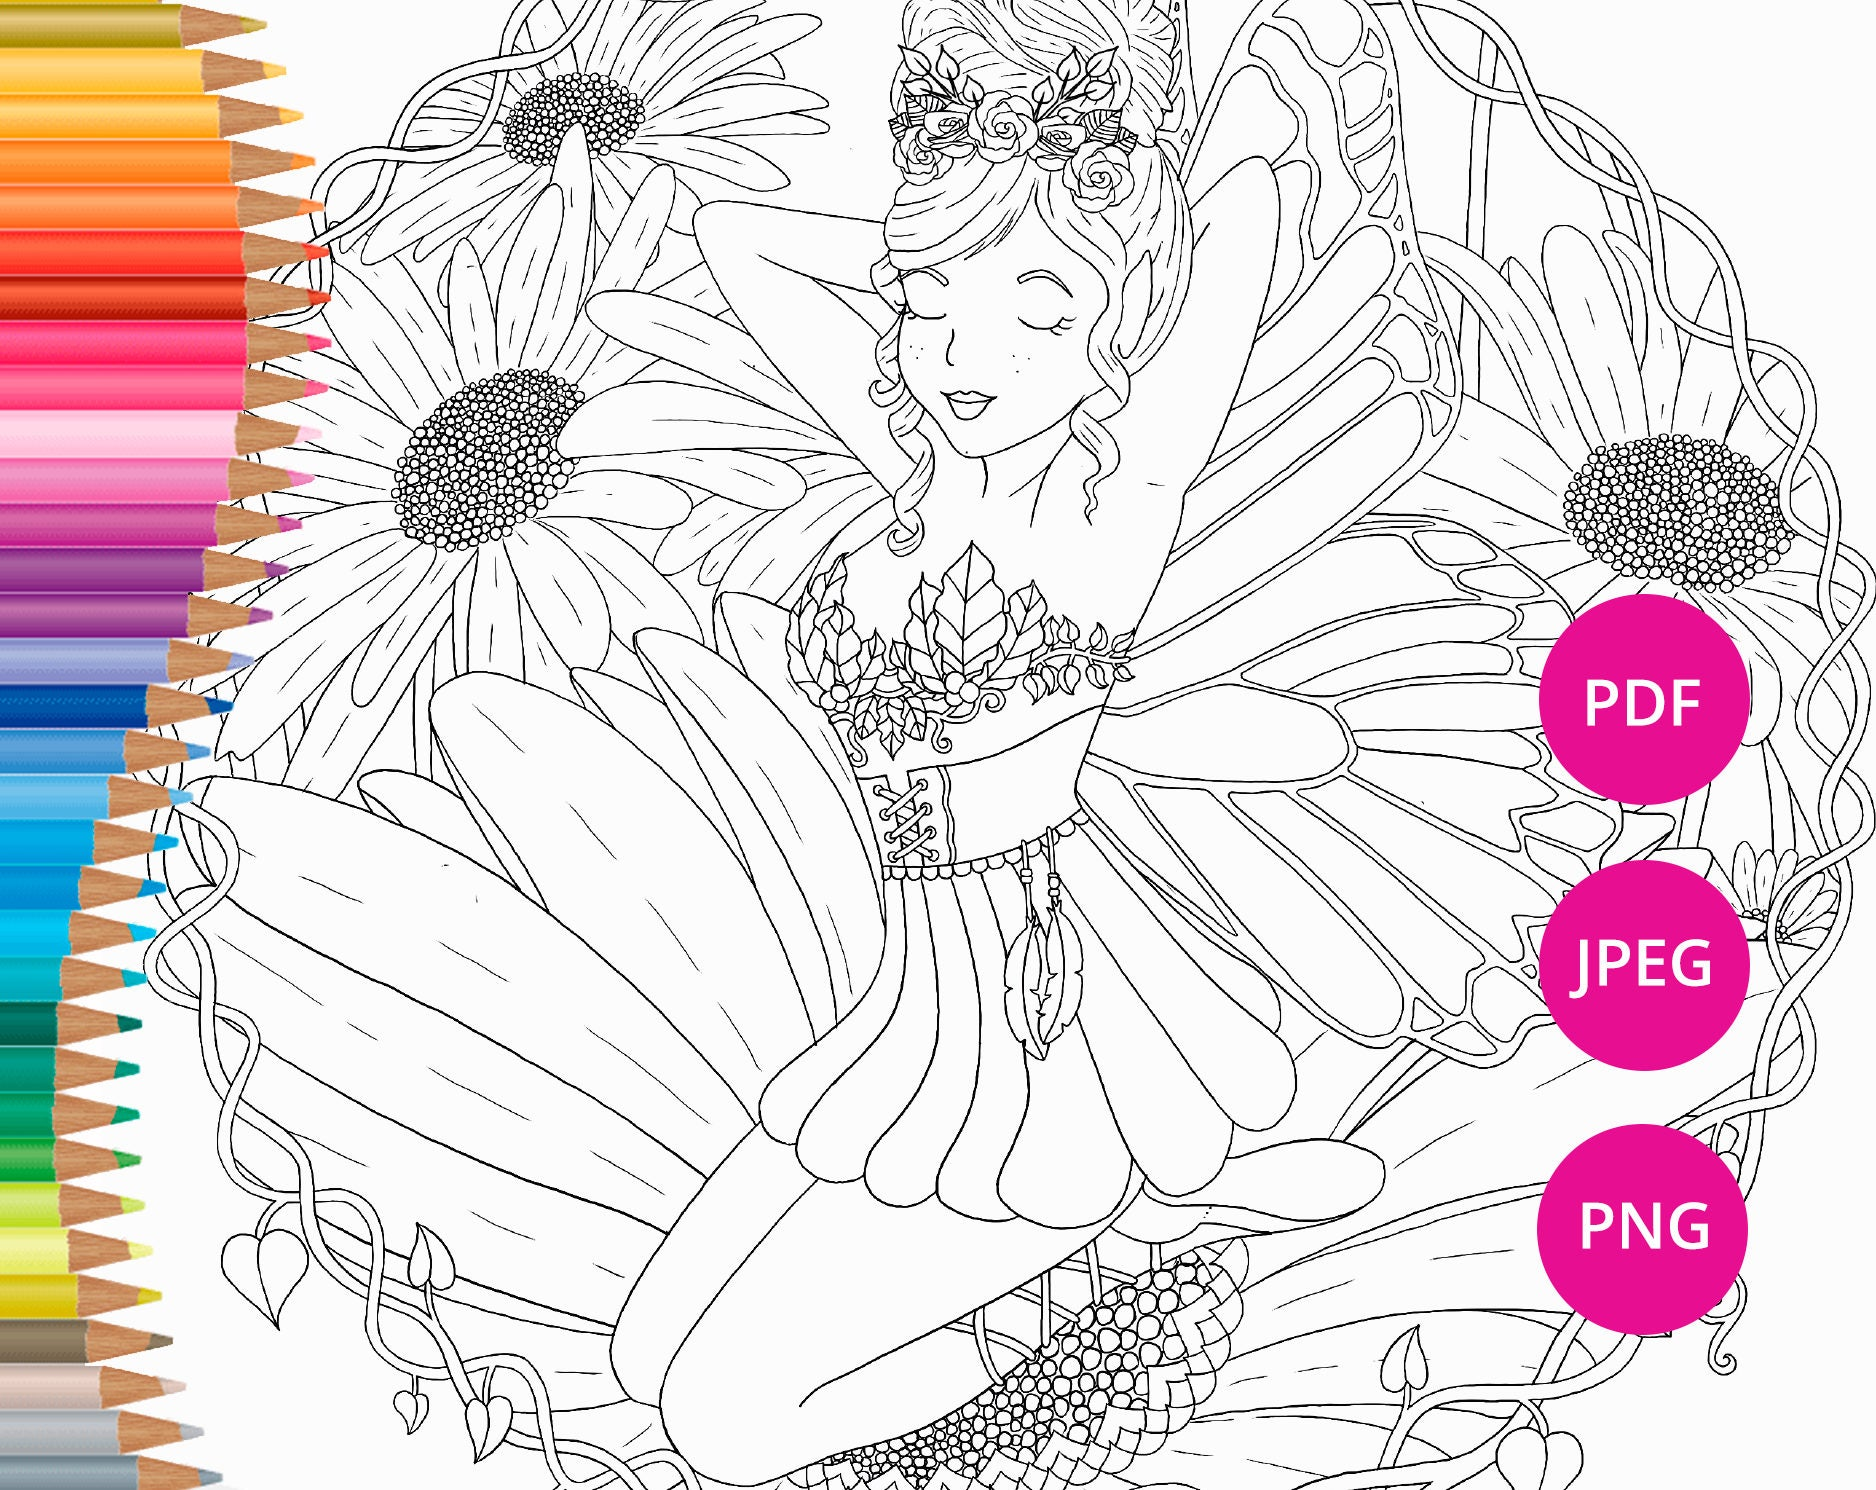 Coloriage Fee Pdf.Fee Pages Page Imprimable Coloriage Faerie Coloriages A Etsy